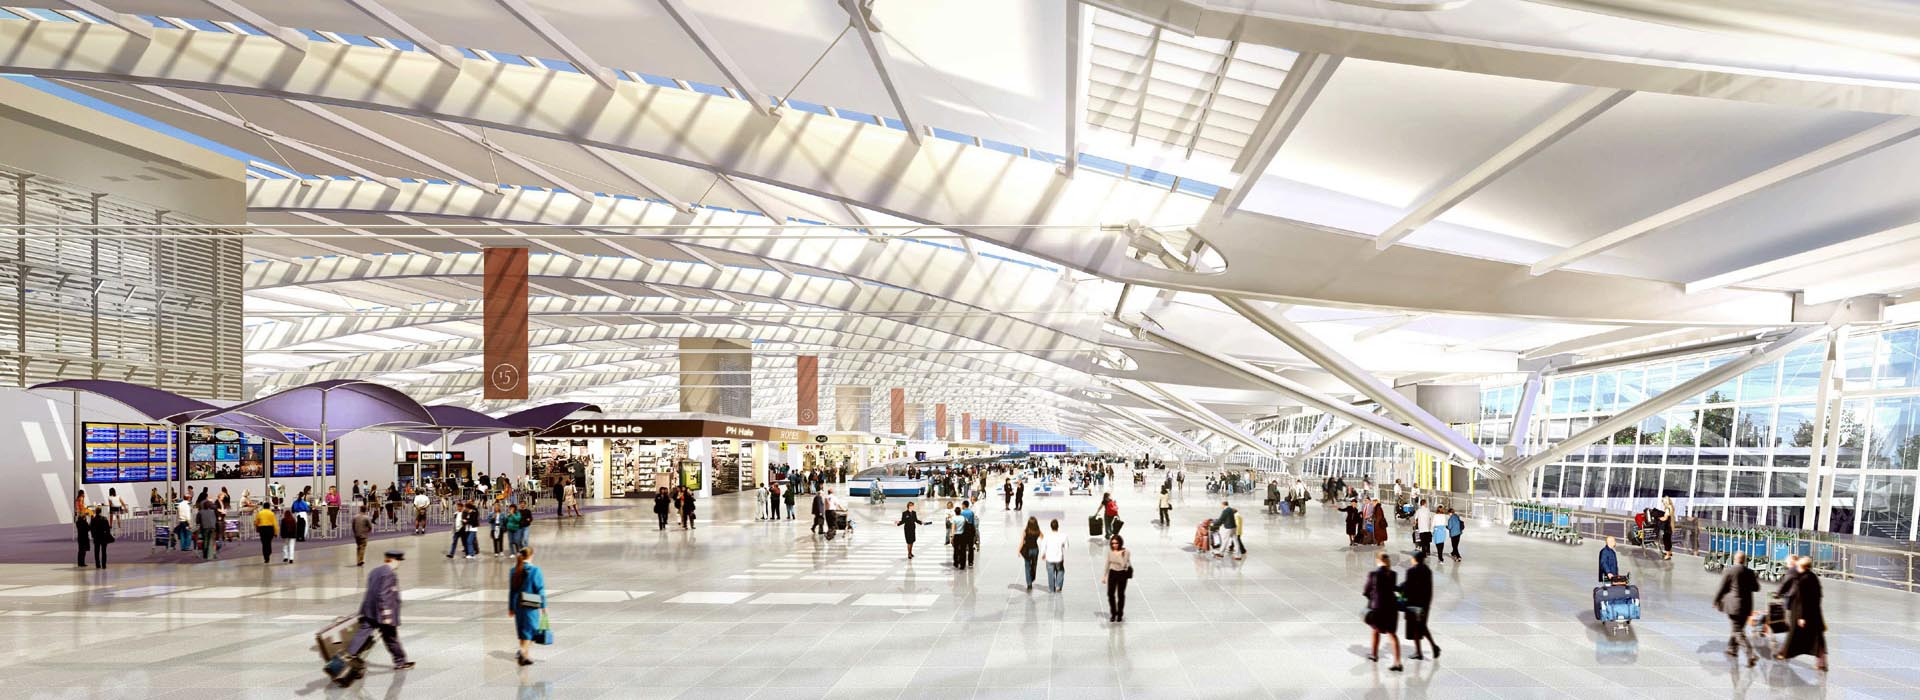 heathrow airport t5 building internal artist impression